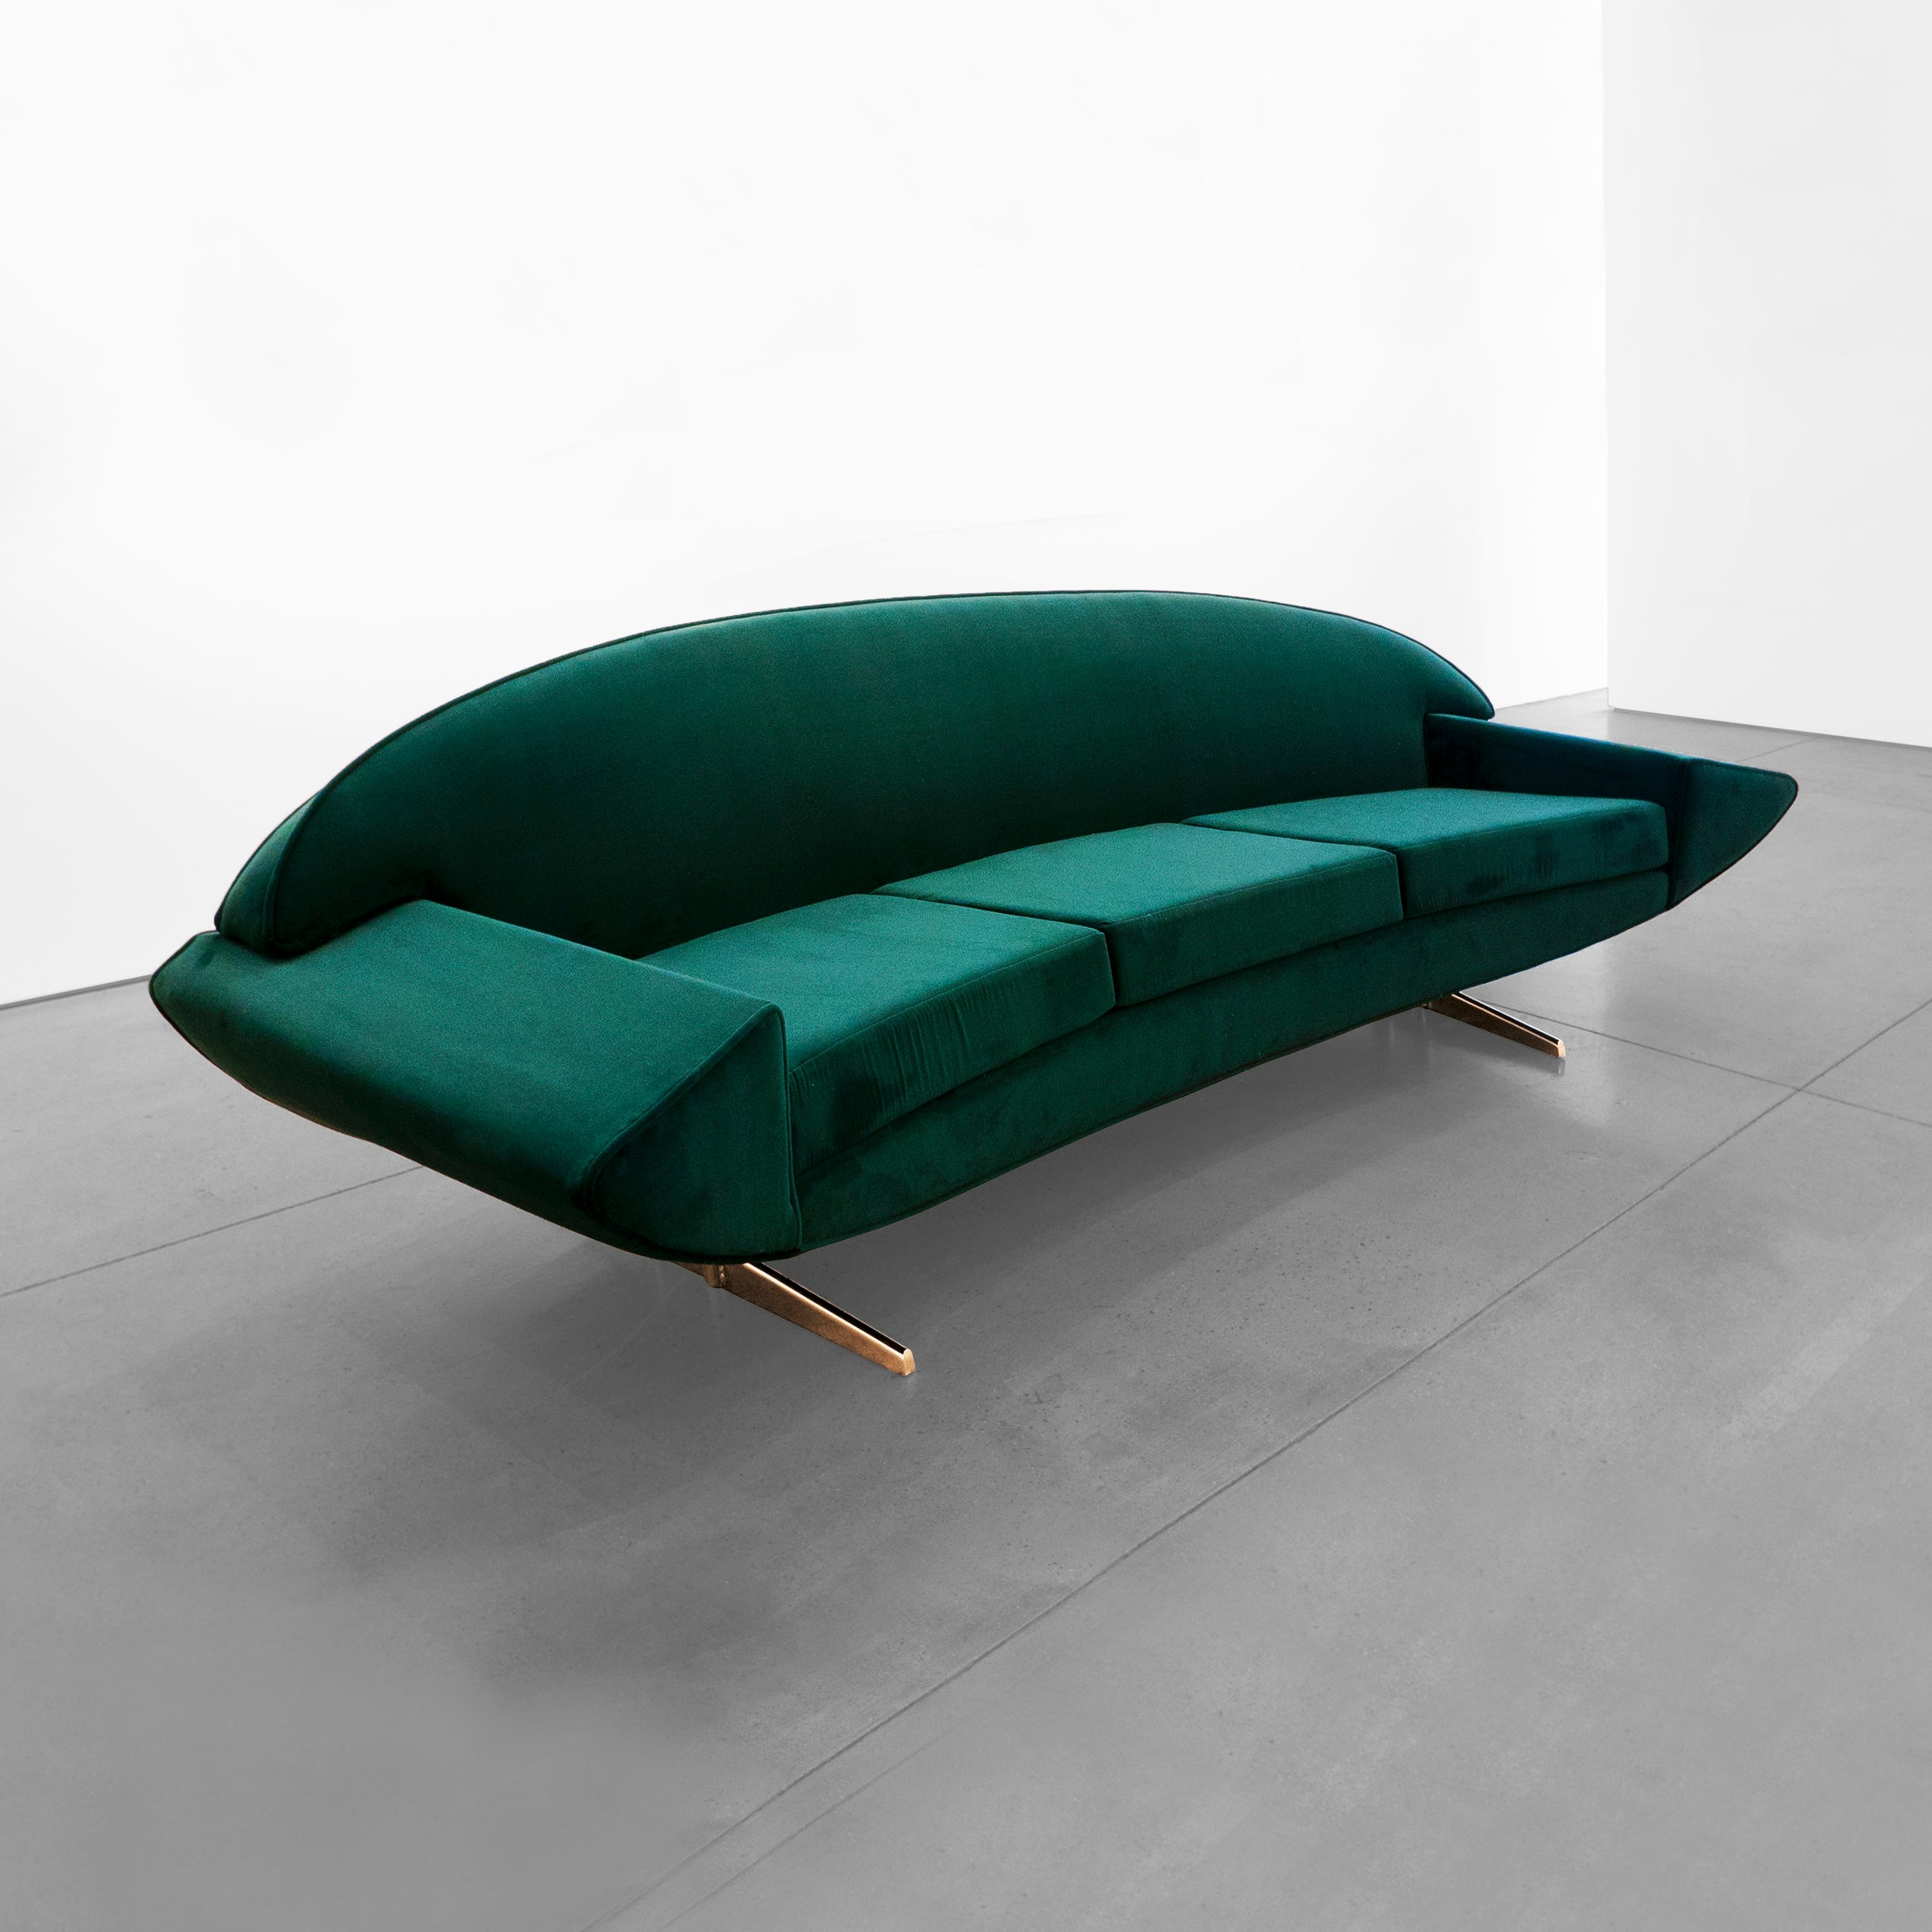 johanness adnersen 'capri' sofa SOLD